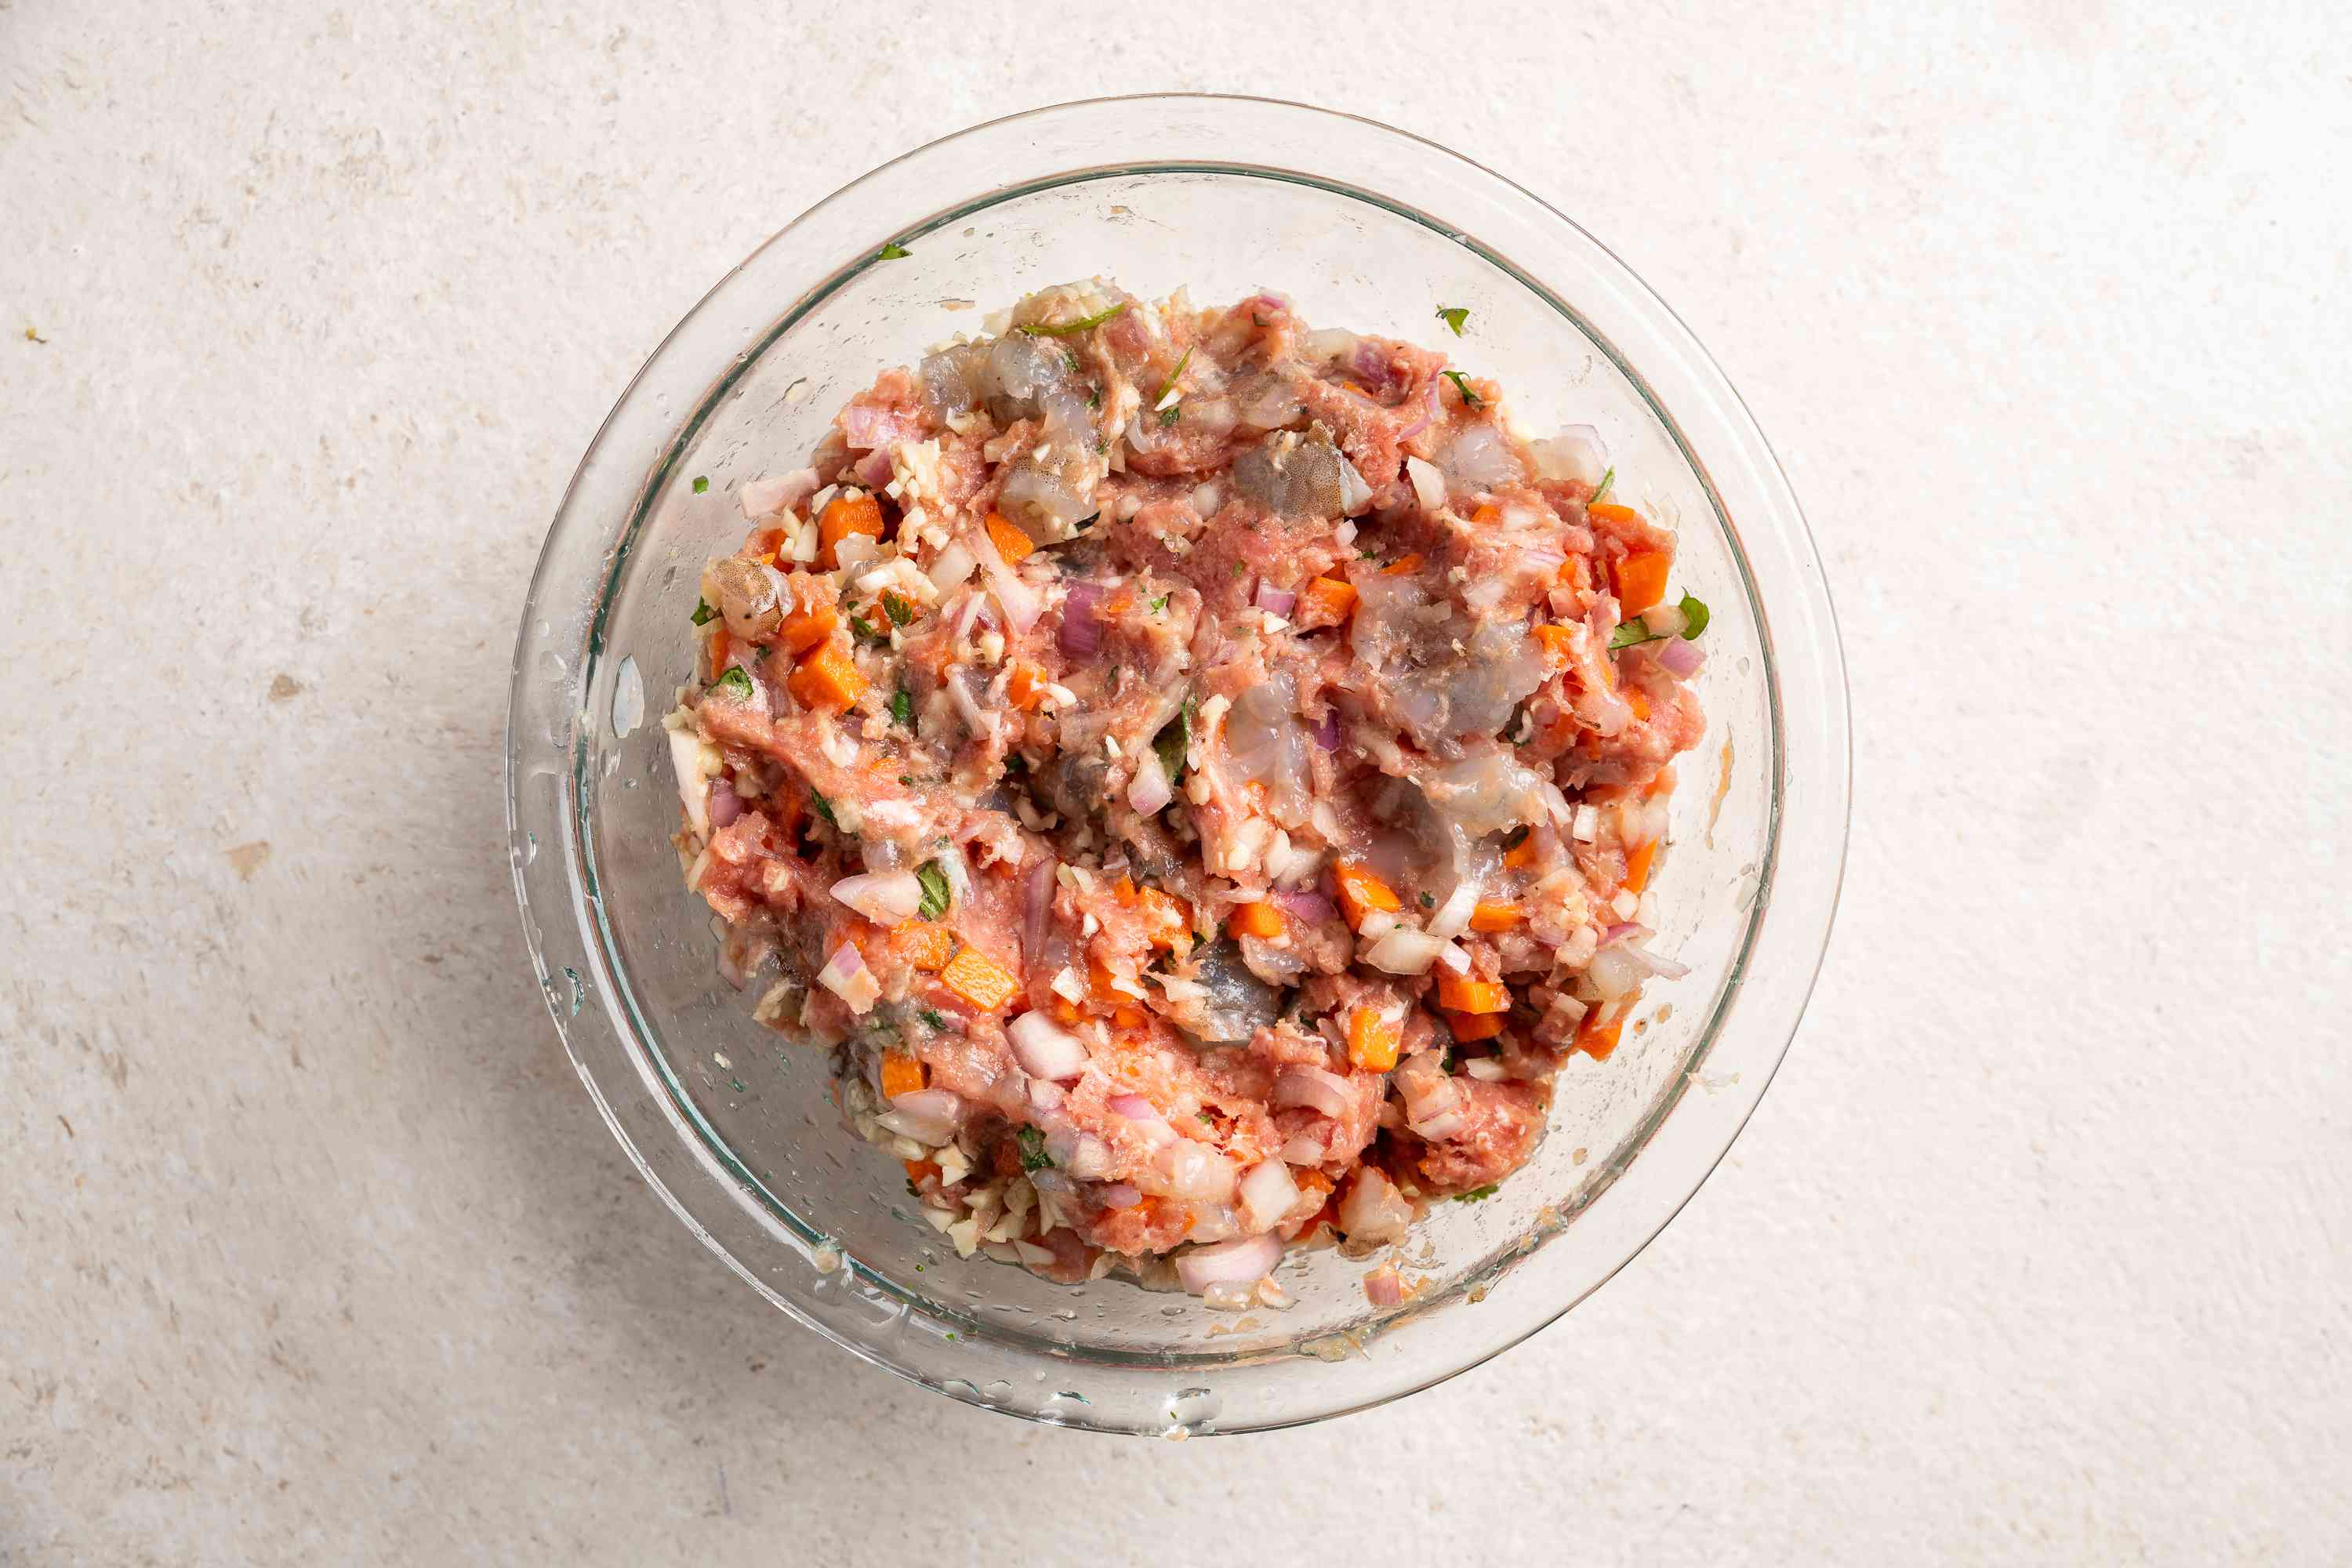 Place the ground pork and minced shrimp in a bowl and add the chopped shallots, carrots, garlic, and cilantro, season with fish sauce